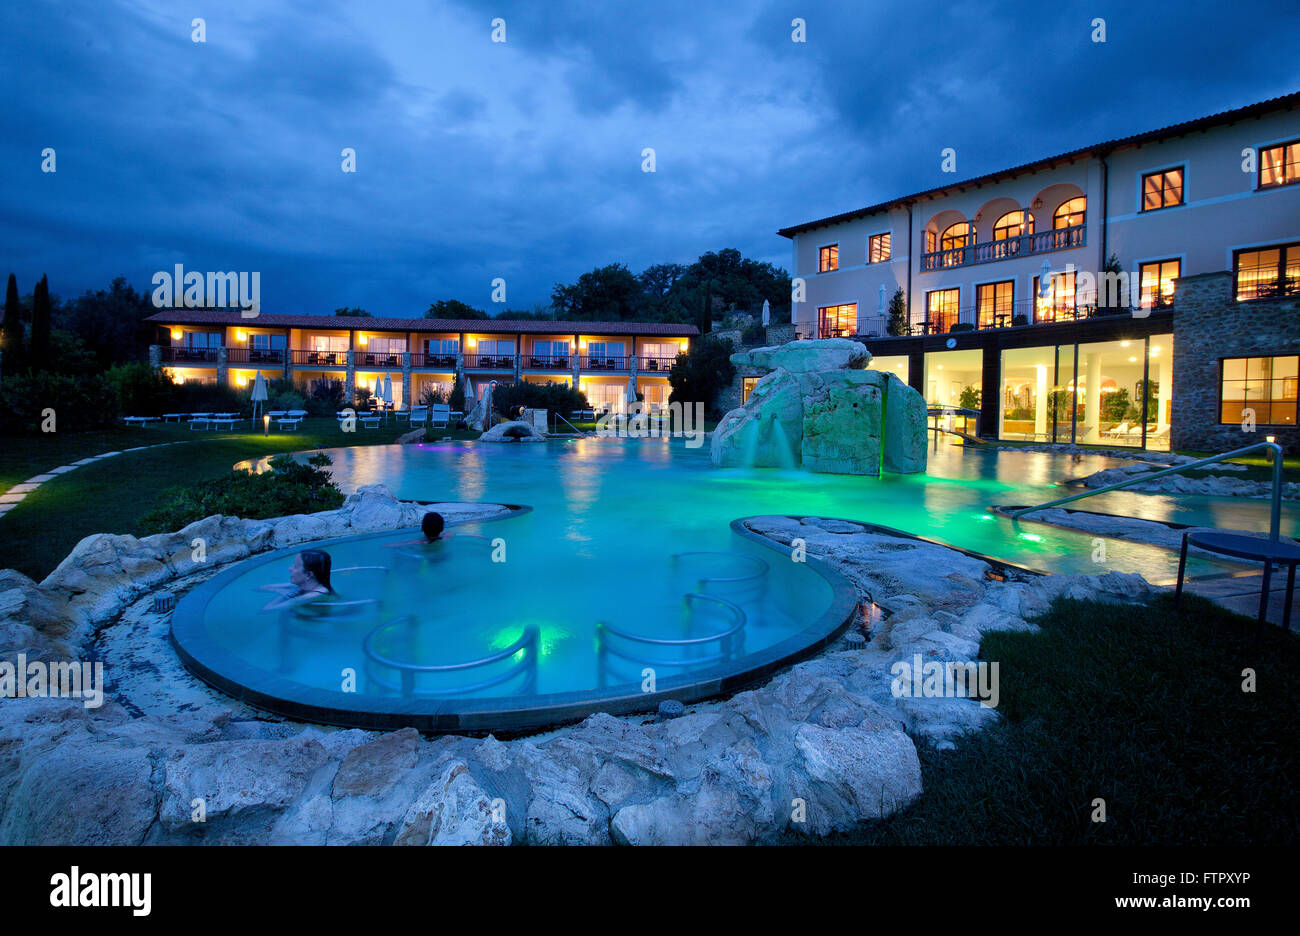 Hotel Adler Thermae Spa  Relax ResortBagno Vignoni